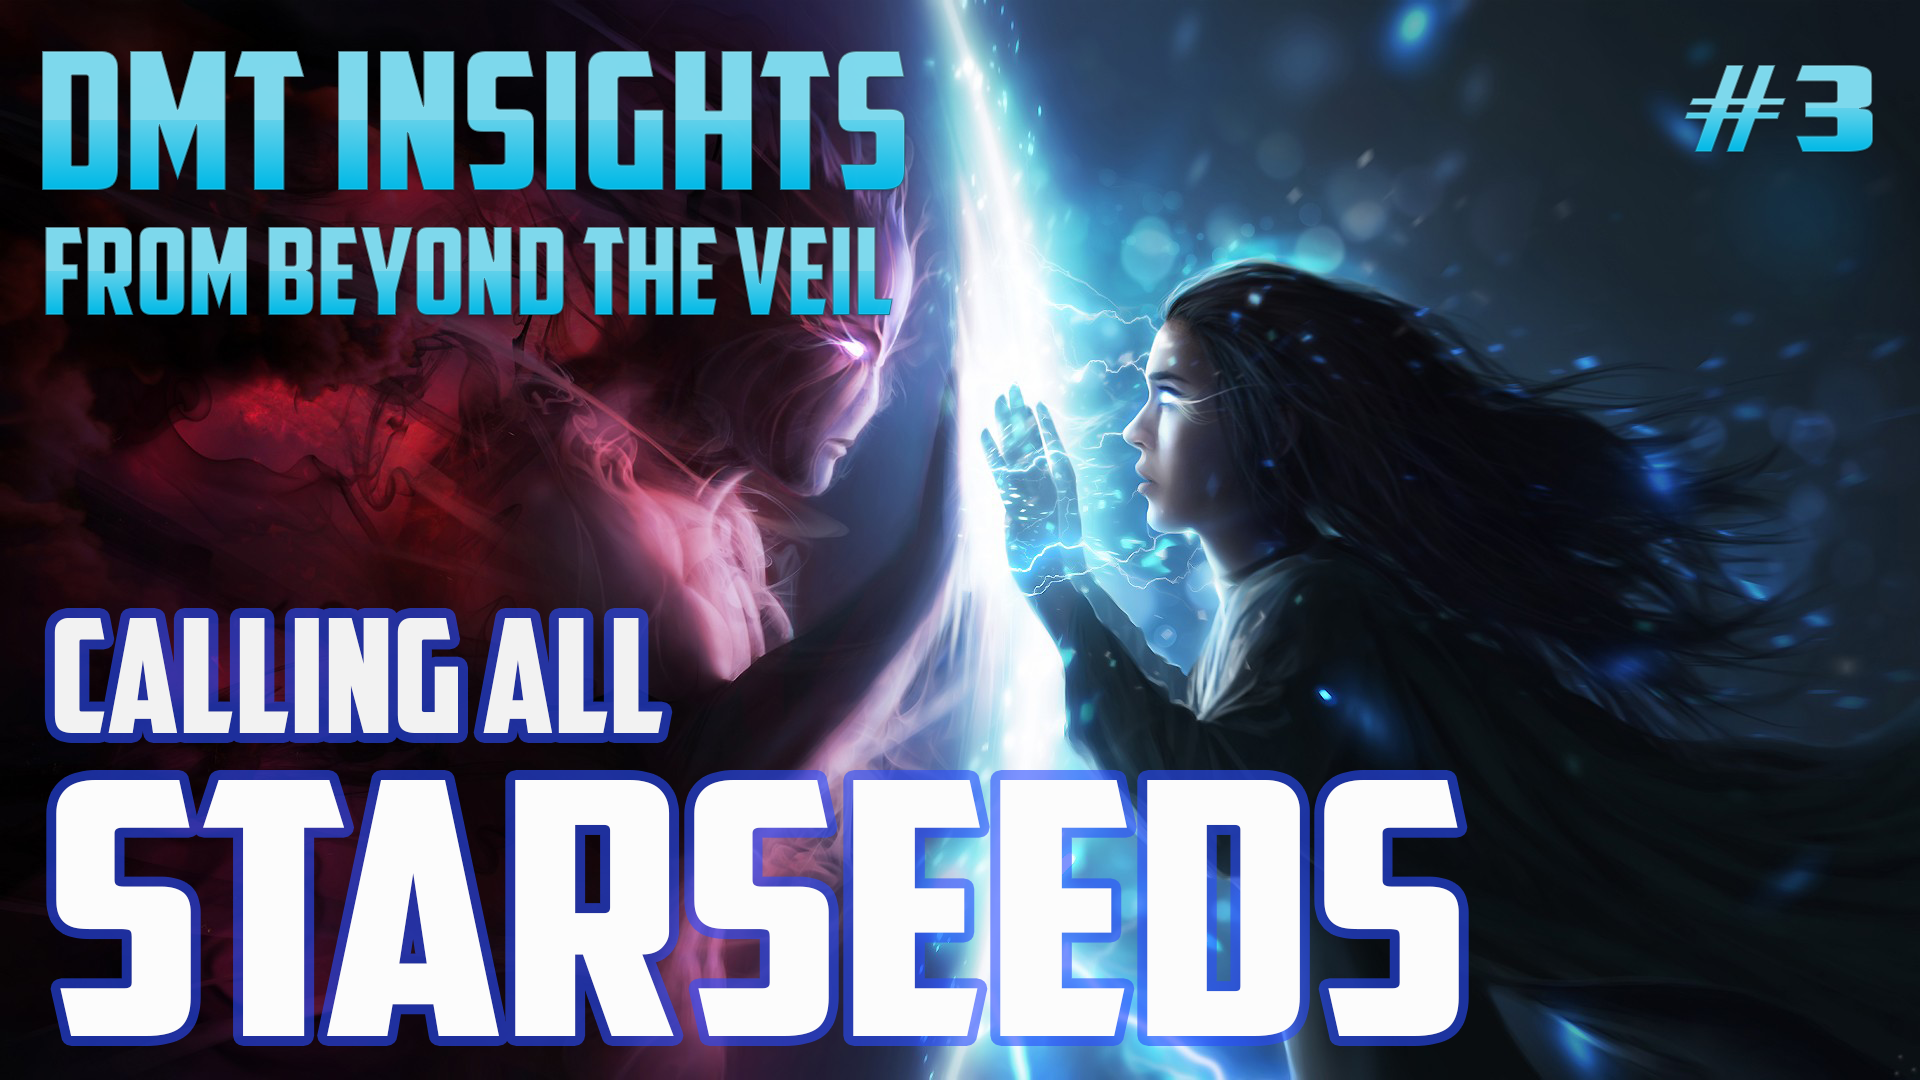 #577 Insights: DMT vs LSD and Starseeds with Frank Castle